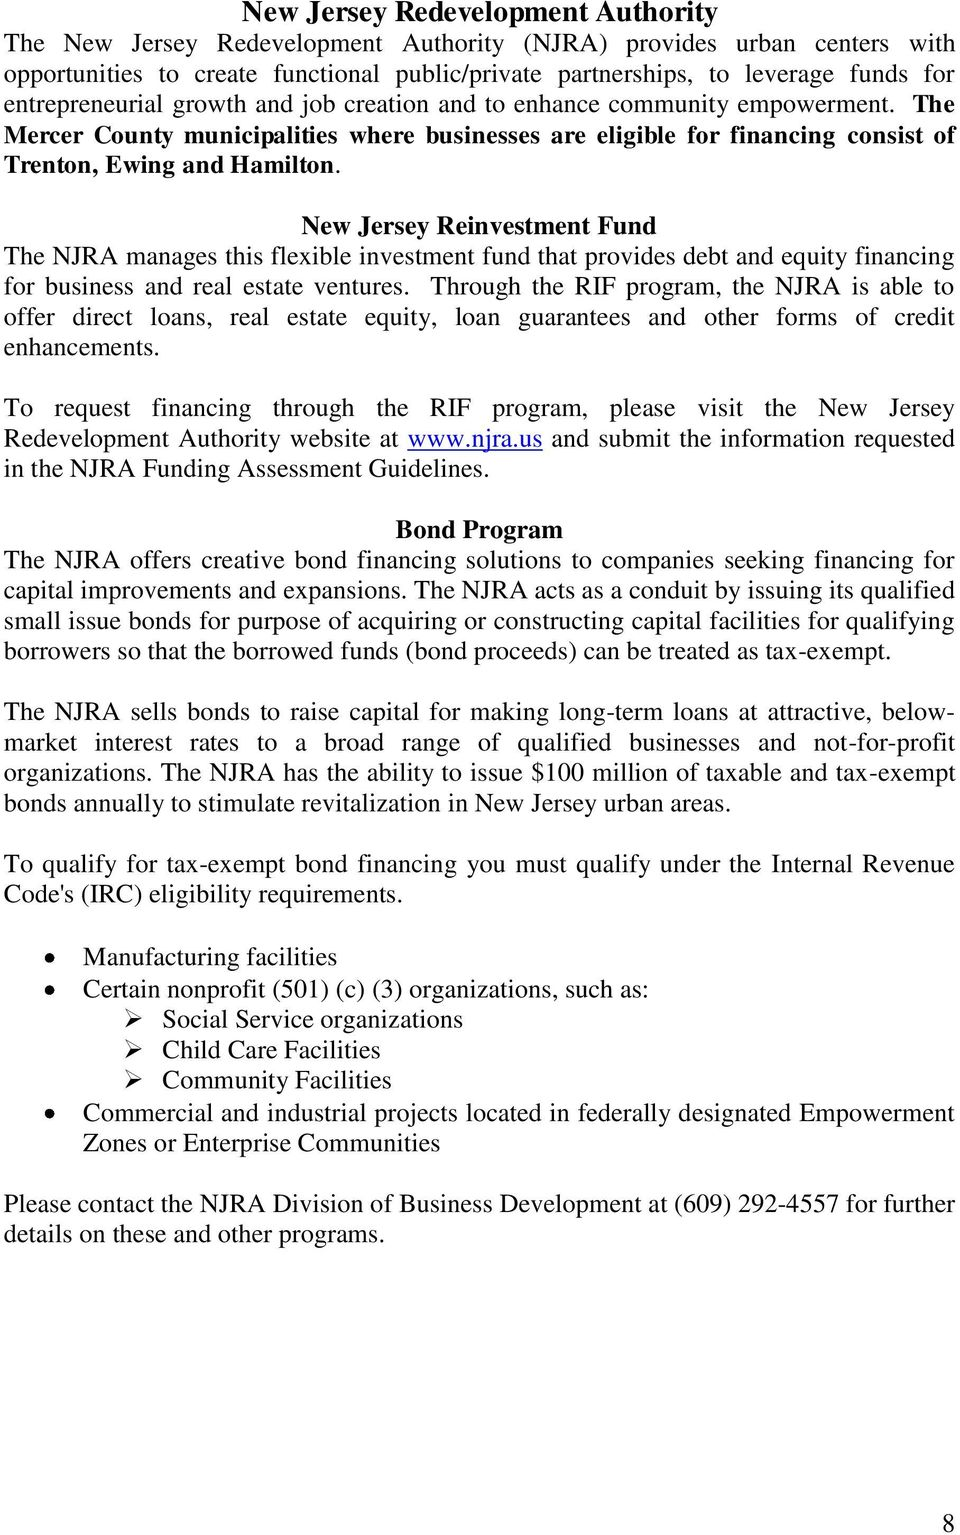 New Jersey Reinvestment Fund The NJRA manages this flexible investment fund that provides debt and equity financing for business and real estate ventures.